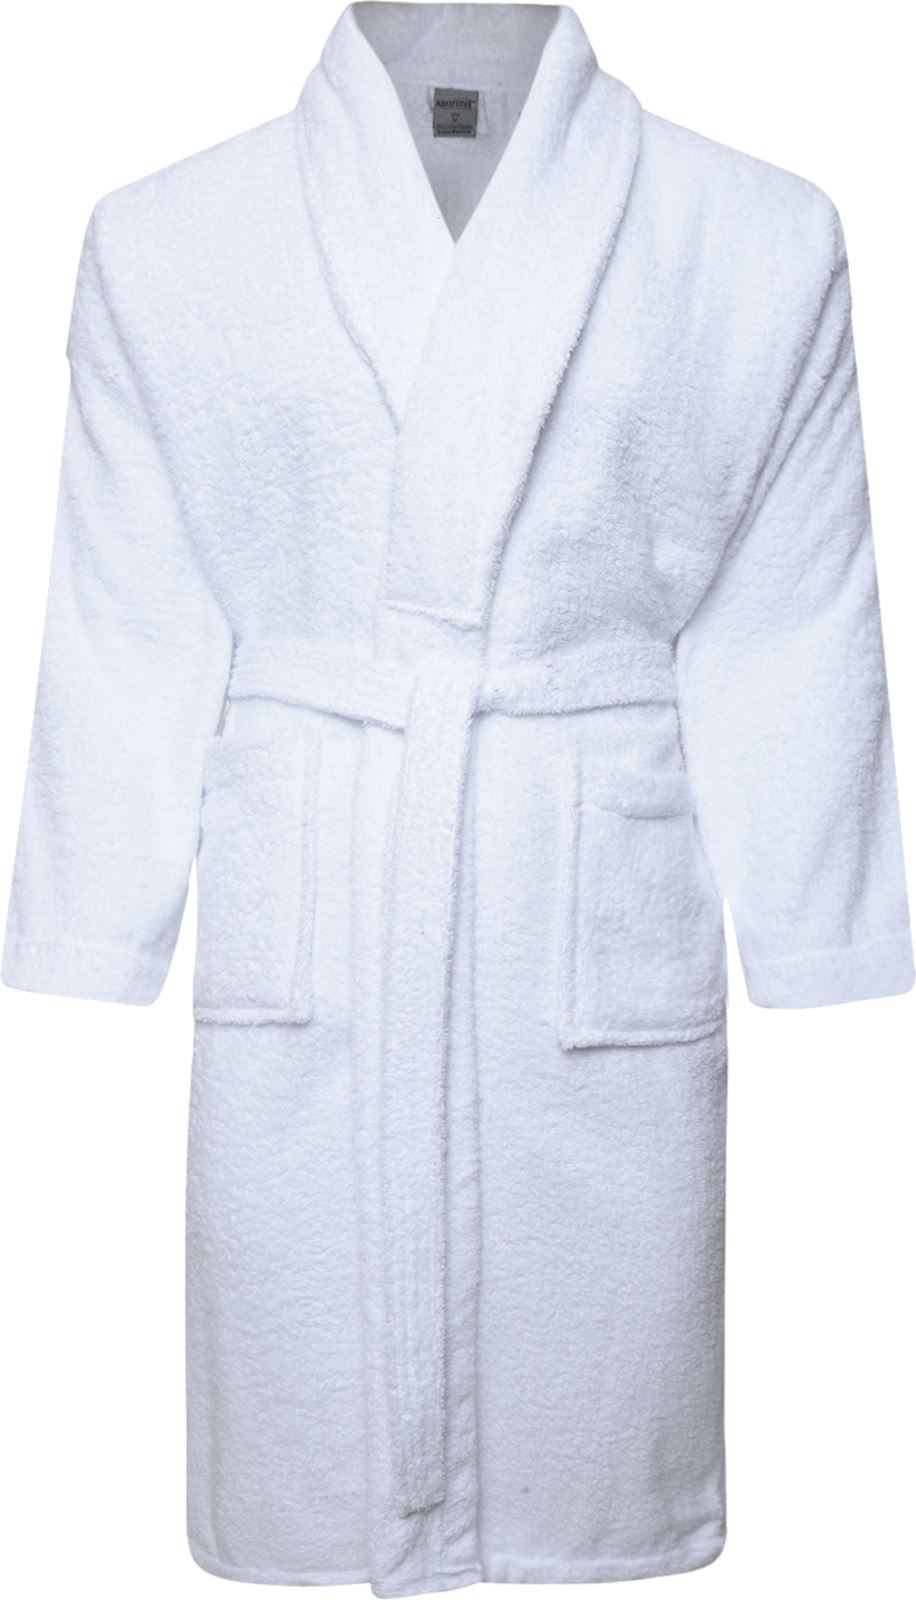 Men s Ladies 100% Cotton Terry Towelling Shawl White Bathrobe Dressing Gown  Robe  2f461be2b